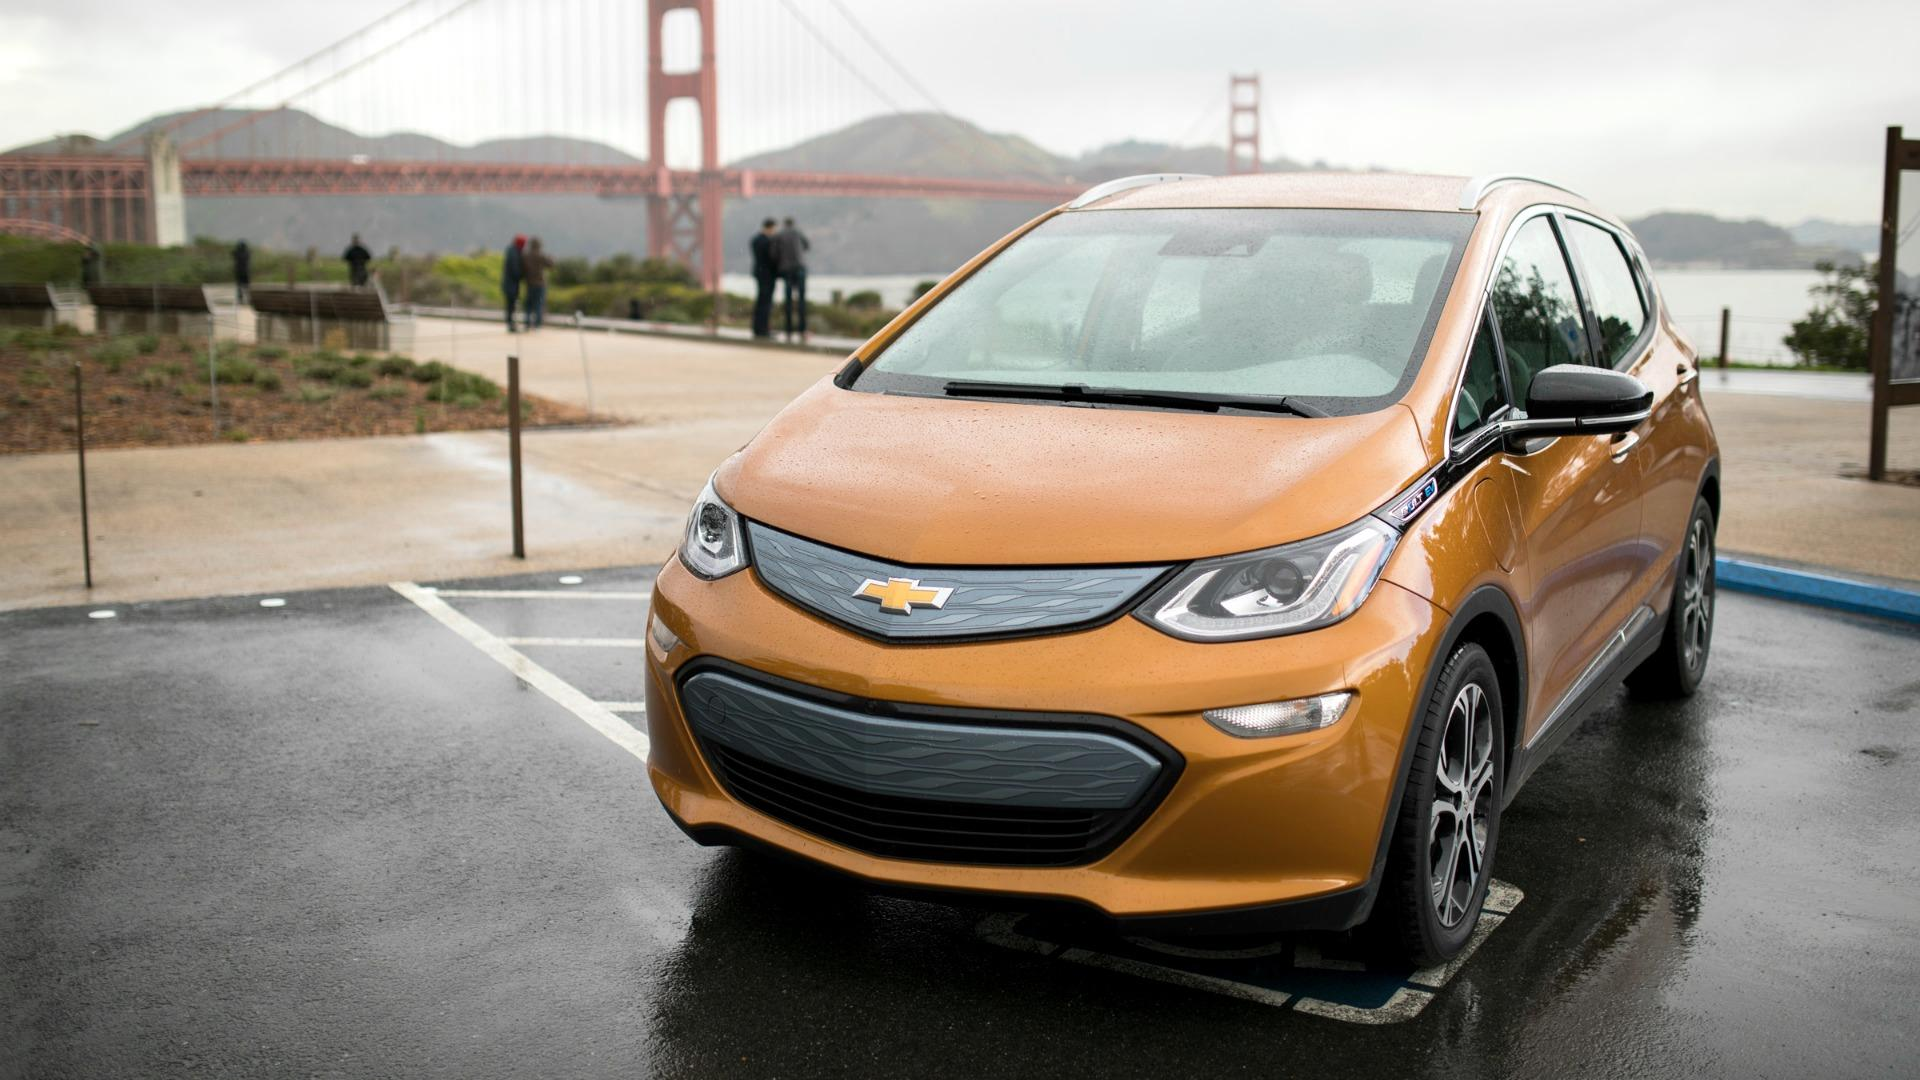 Here's how Chevrolet built a practical electric vehicle with the 2017 Bolt EV